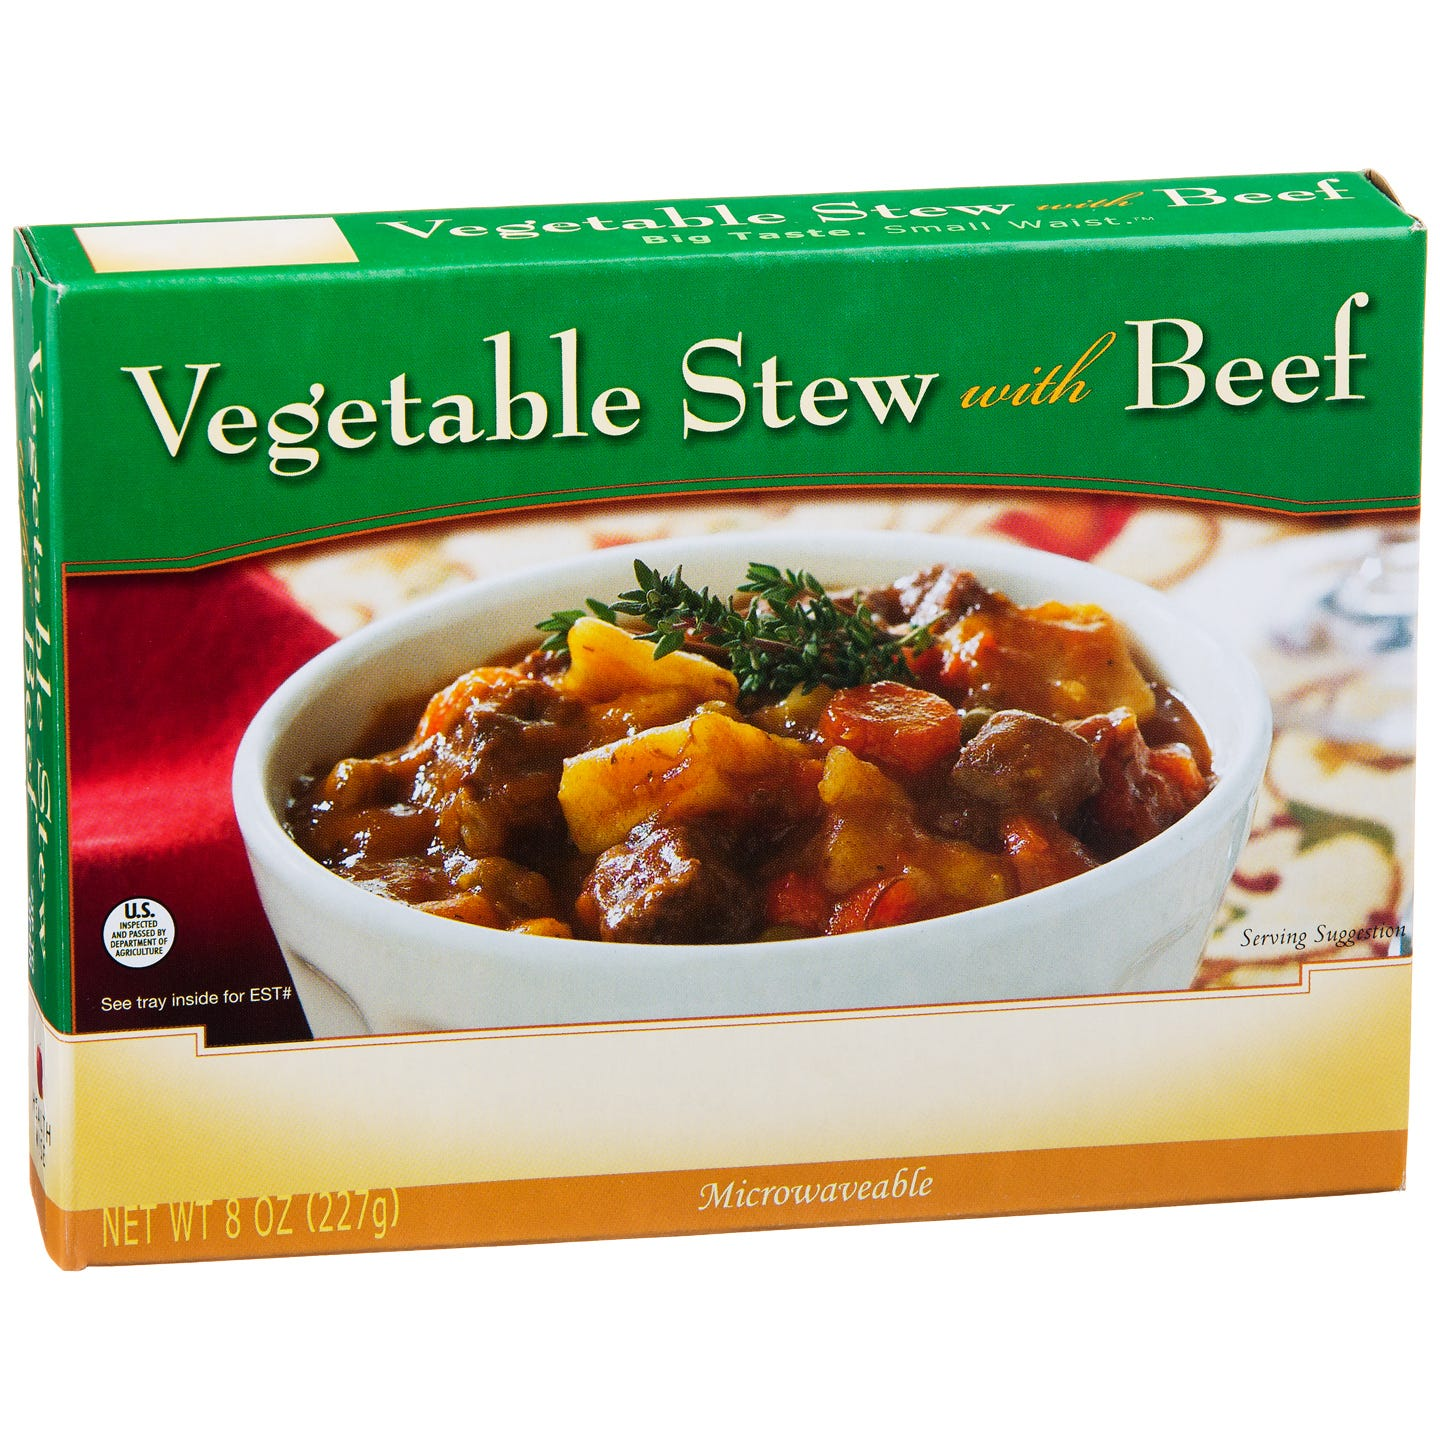 Low Calorie Meal Vegetable Stew With Beef 8 Oz  BariWise